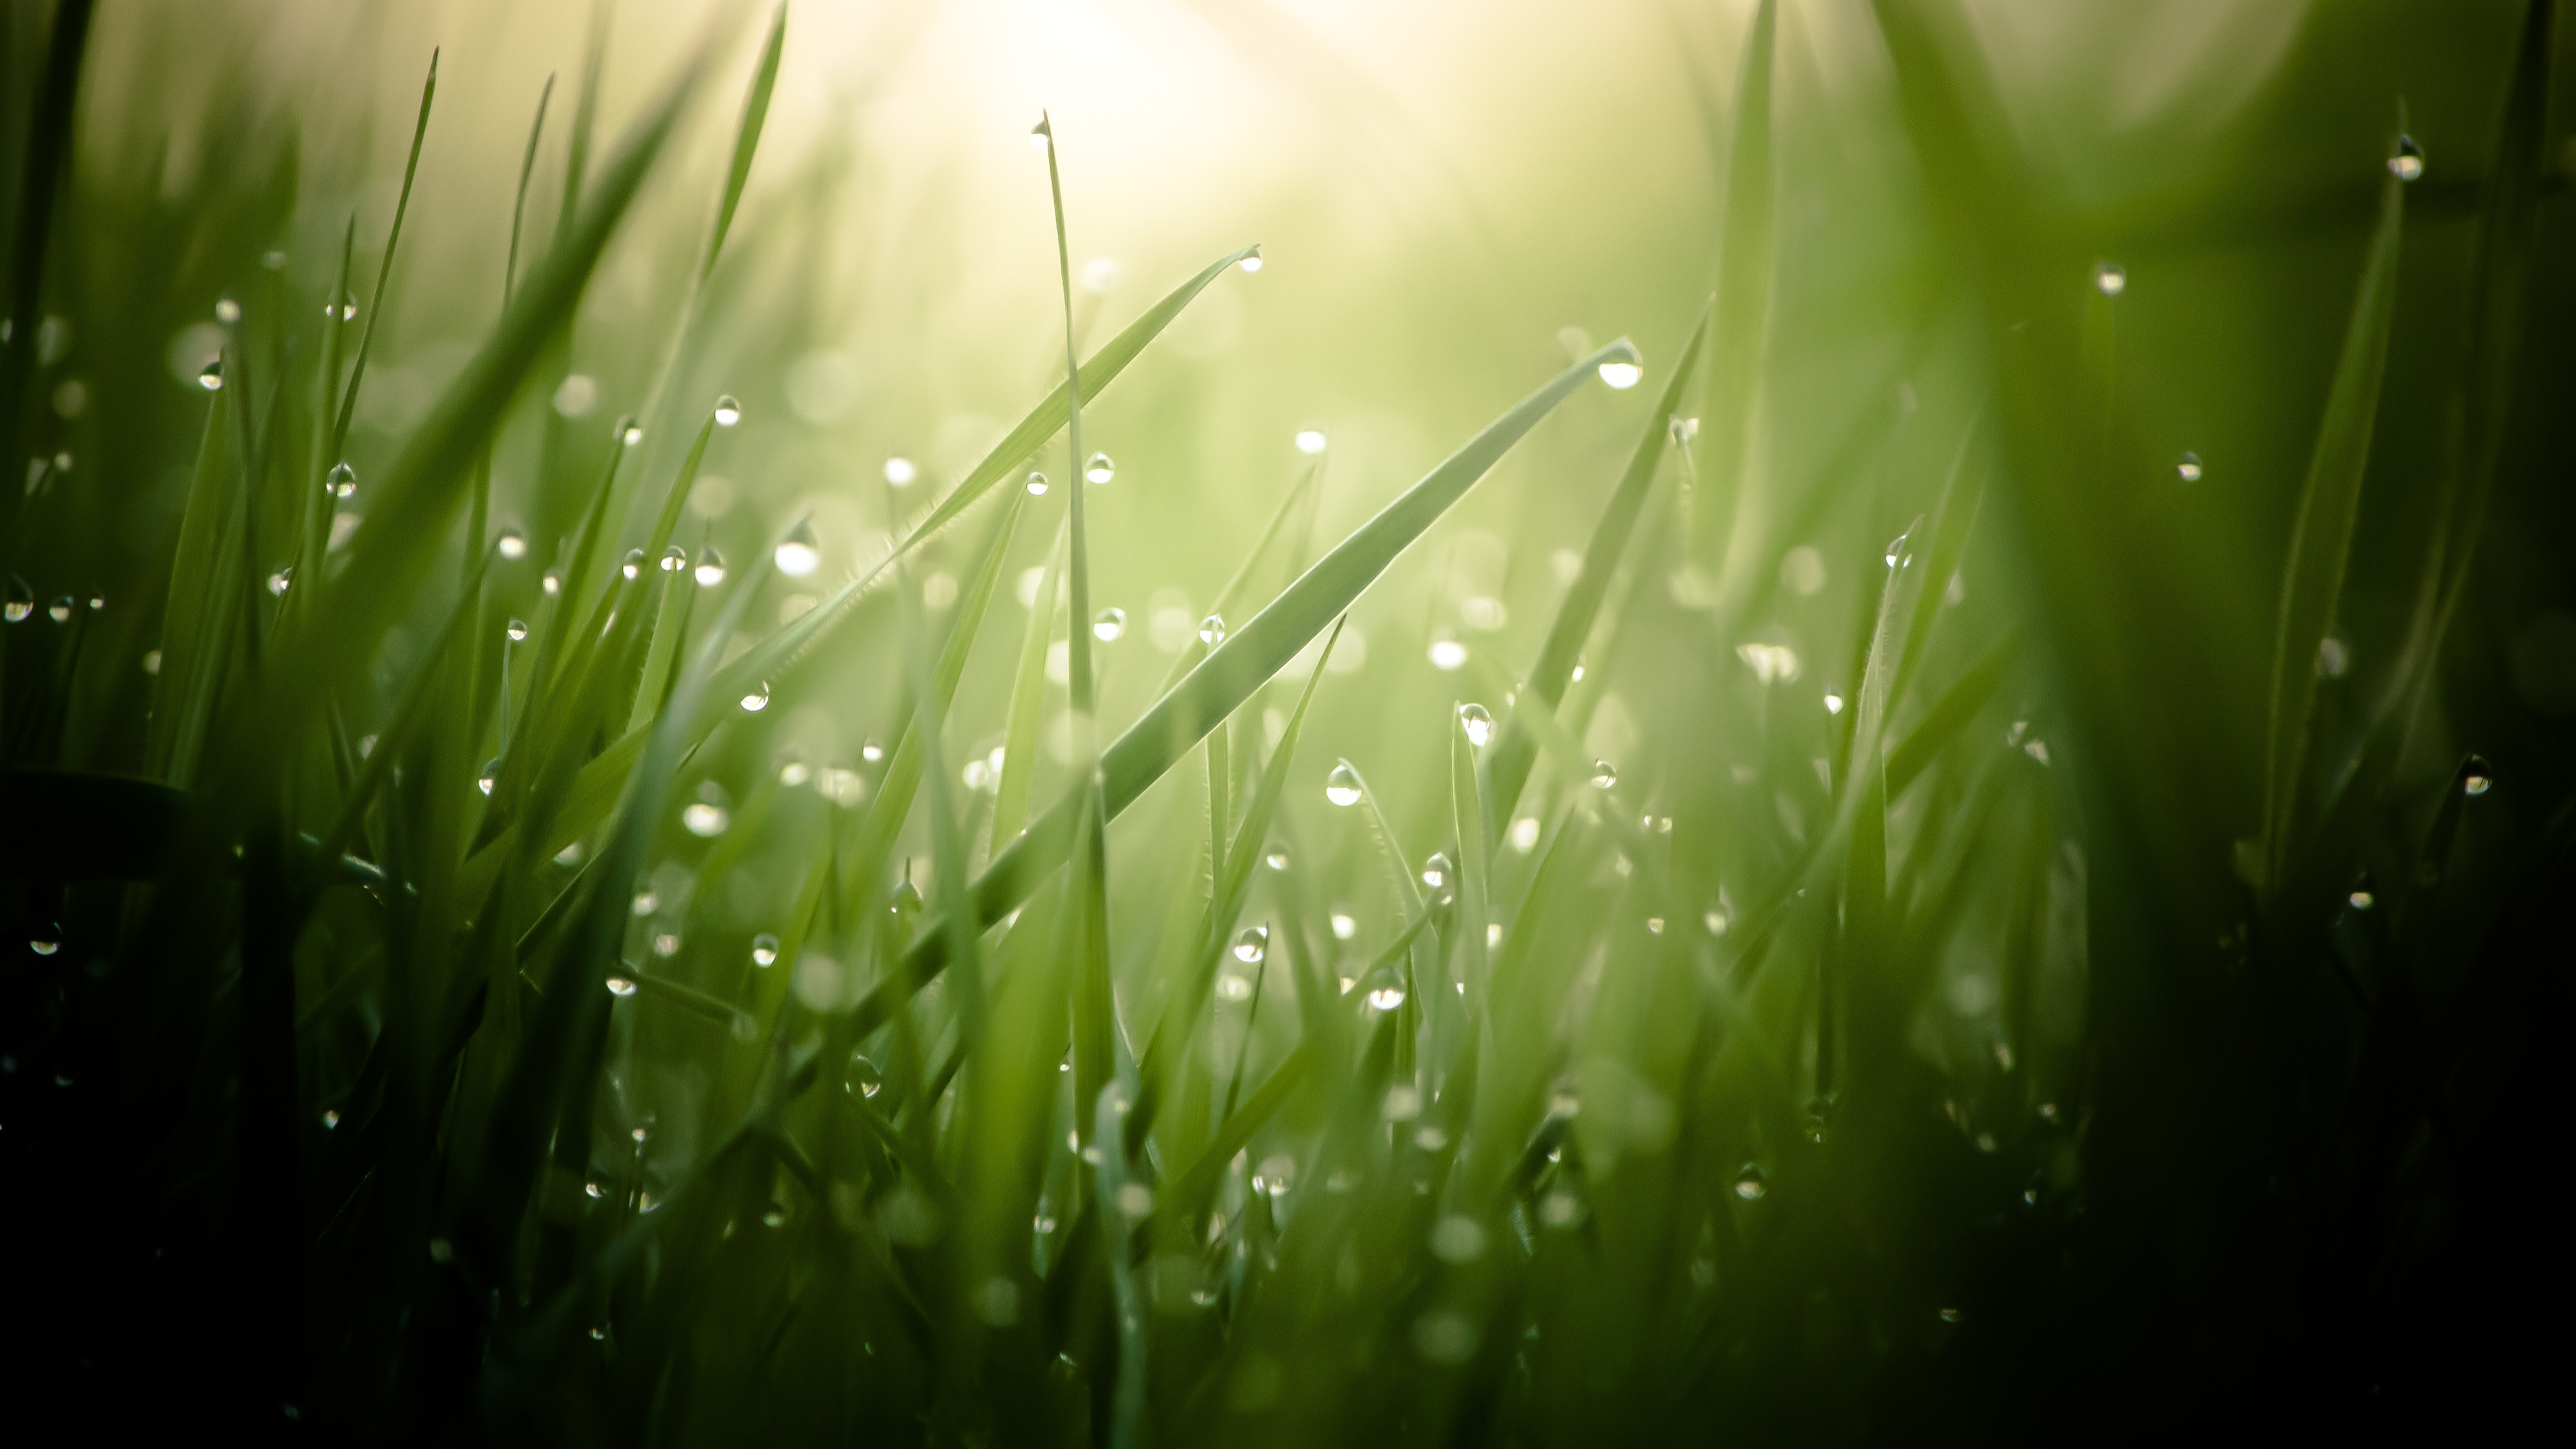 Morning Dew On Grass Threads 4K Ultra HD Desktop